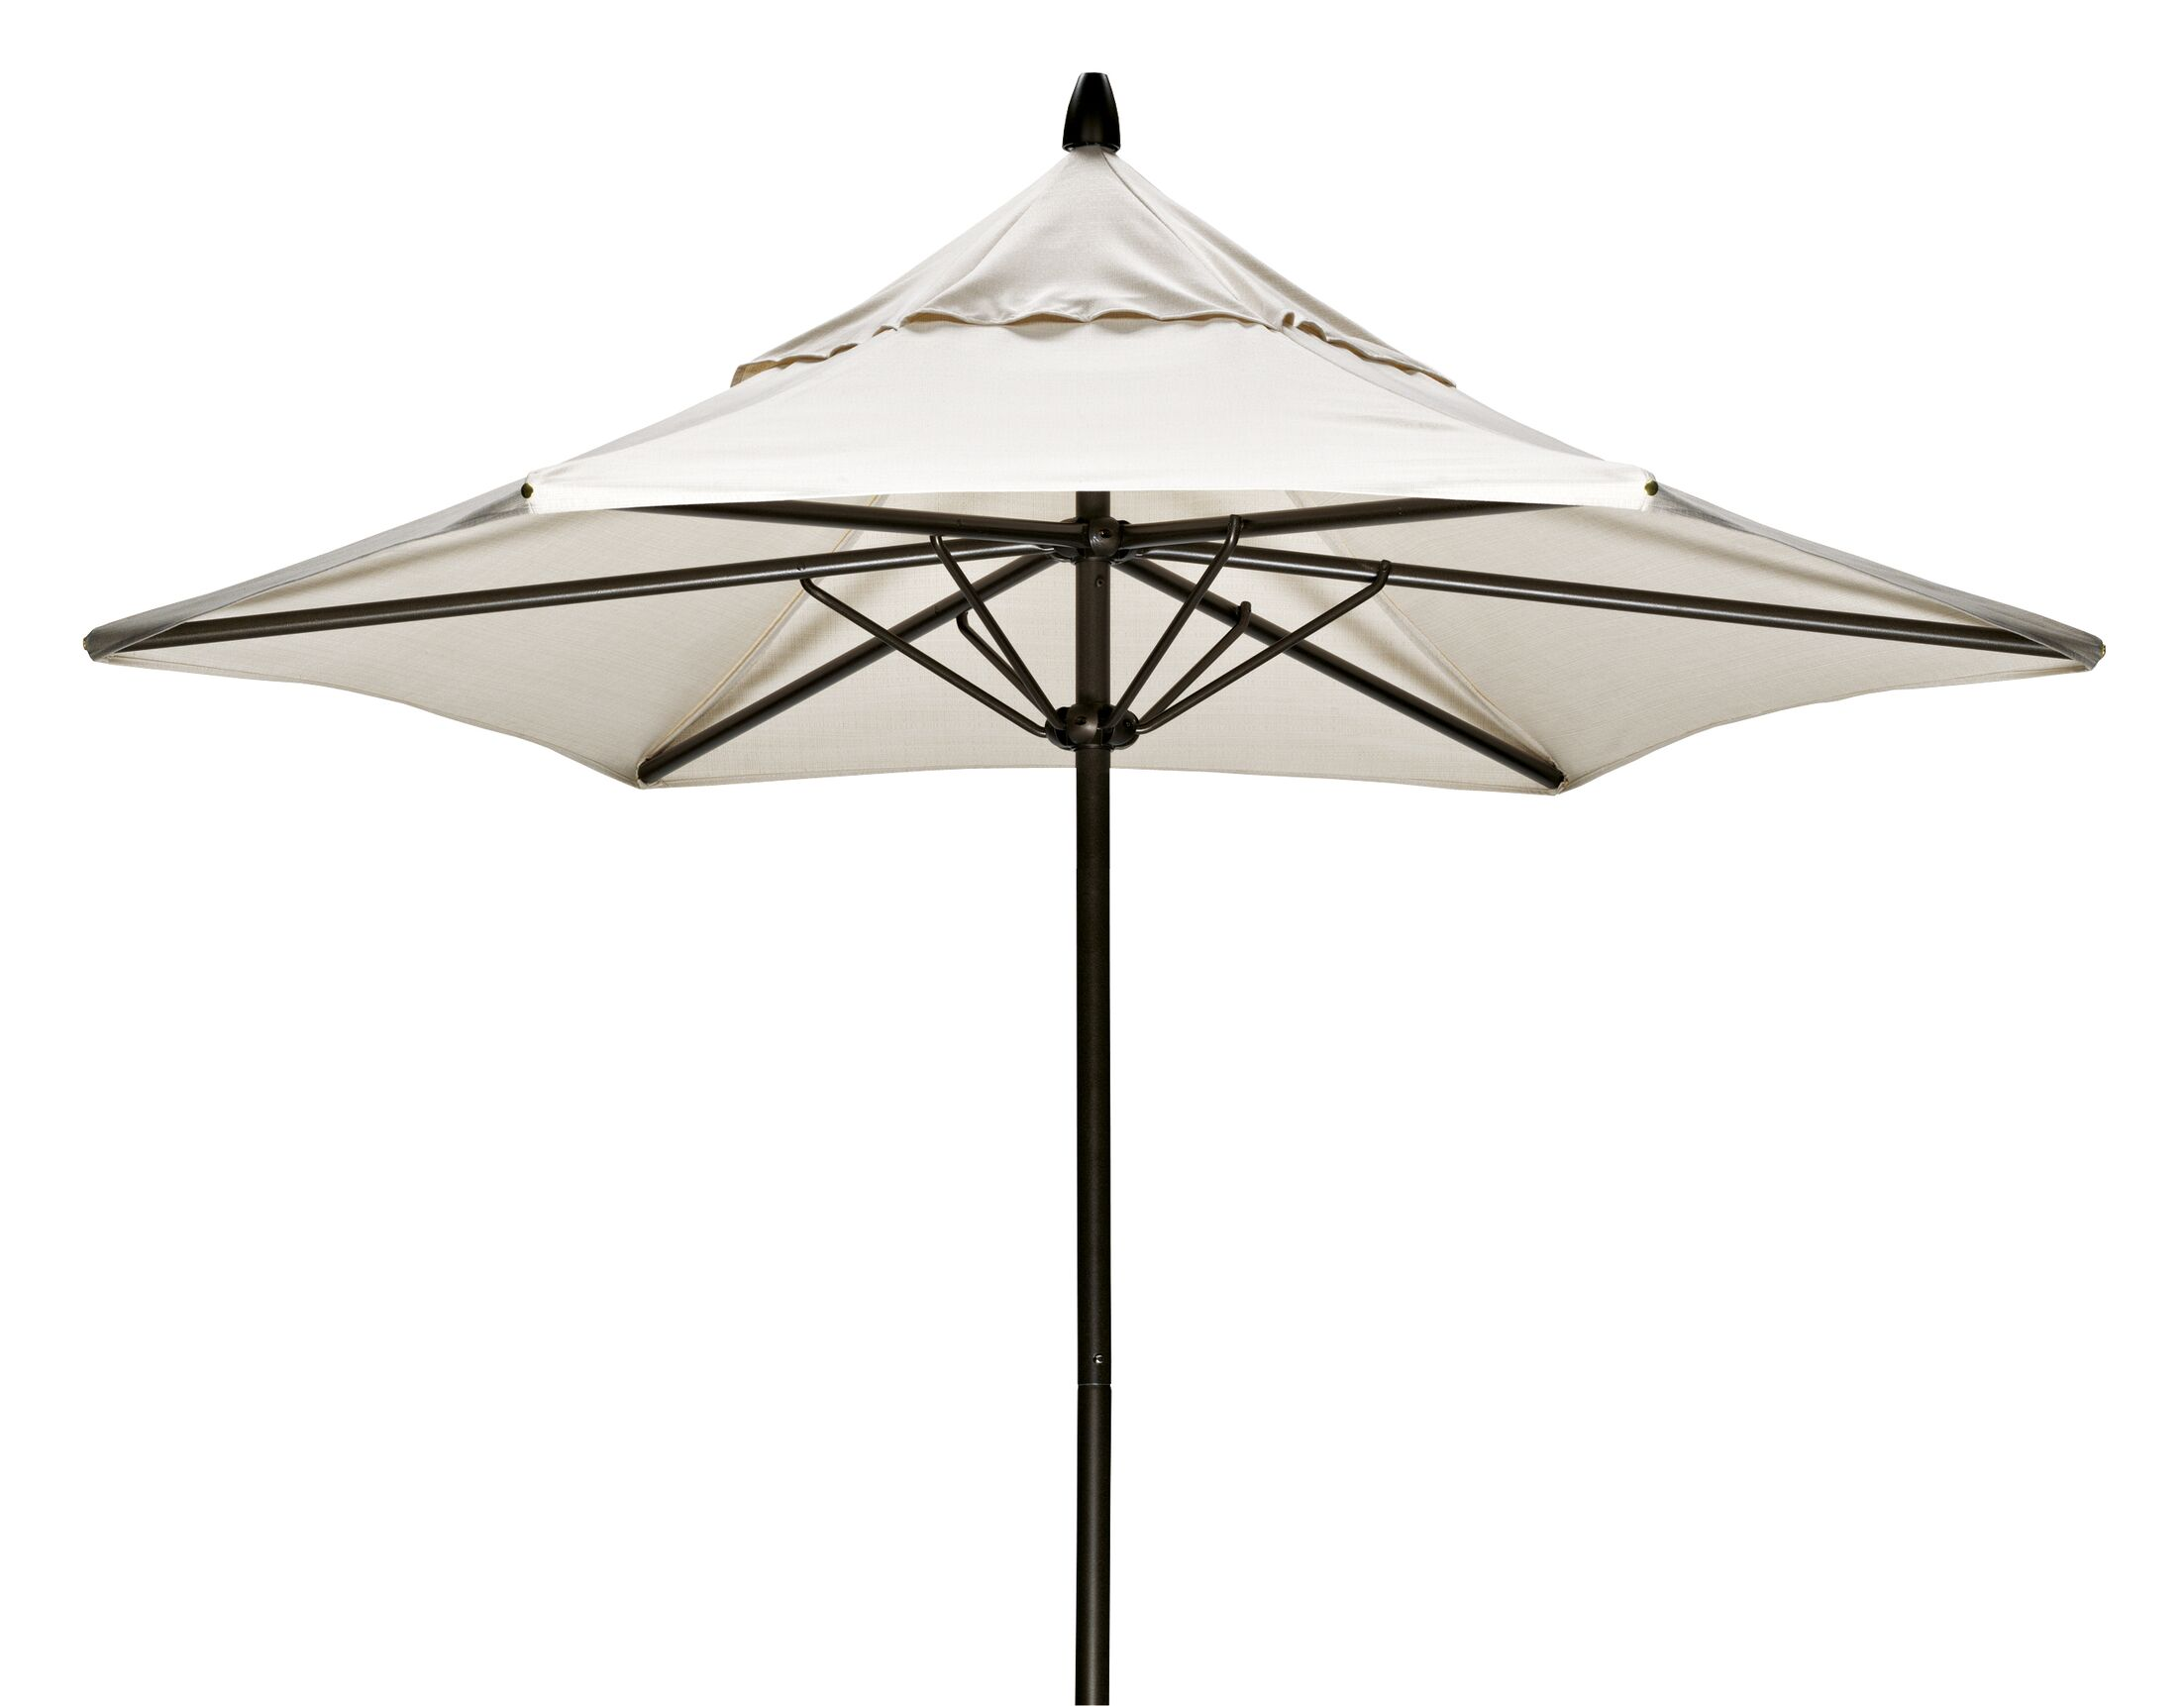 Commercial 7.5' Market Umbrella Fabric: Anders, Frame Finish: Gloss White